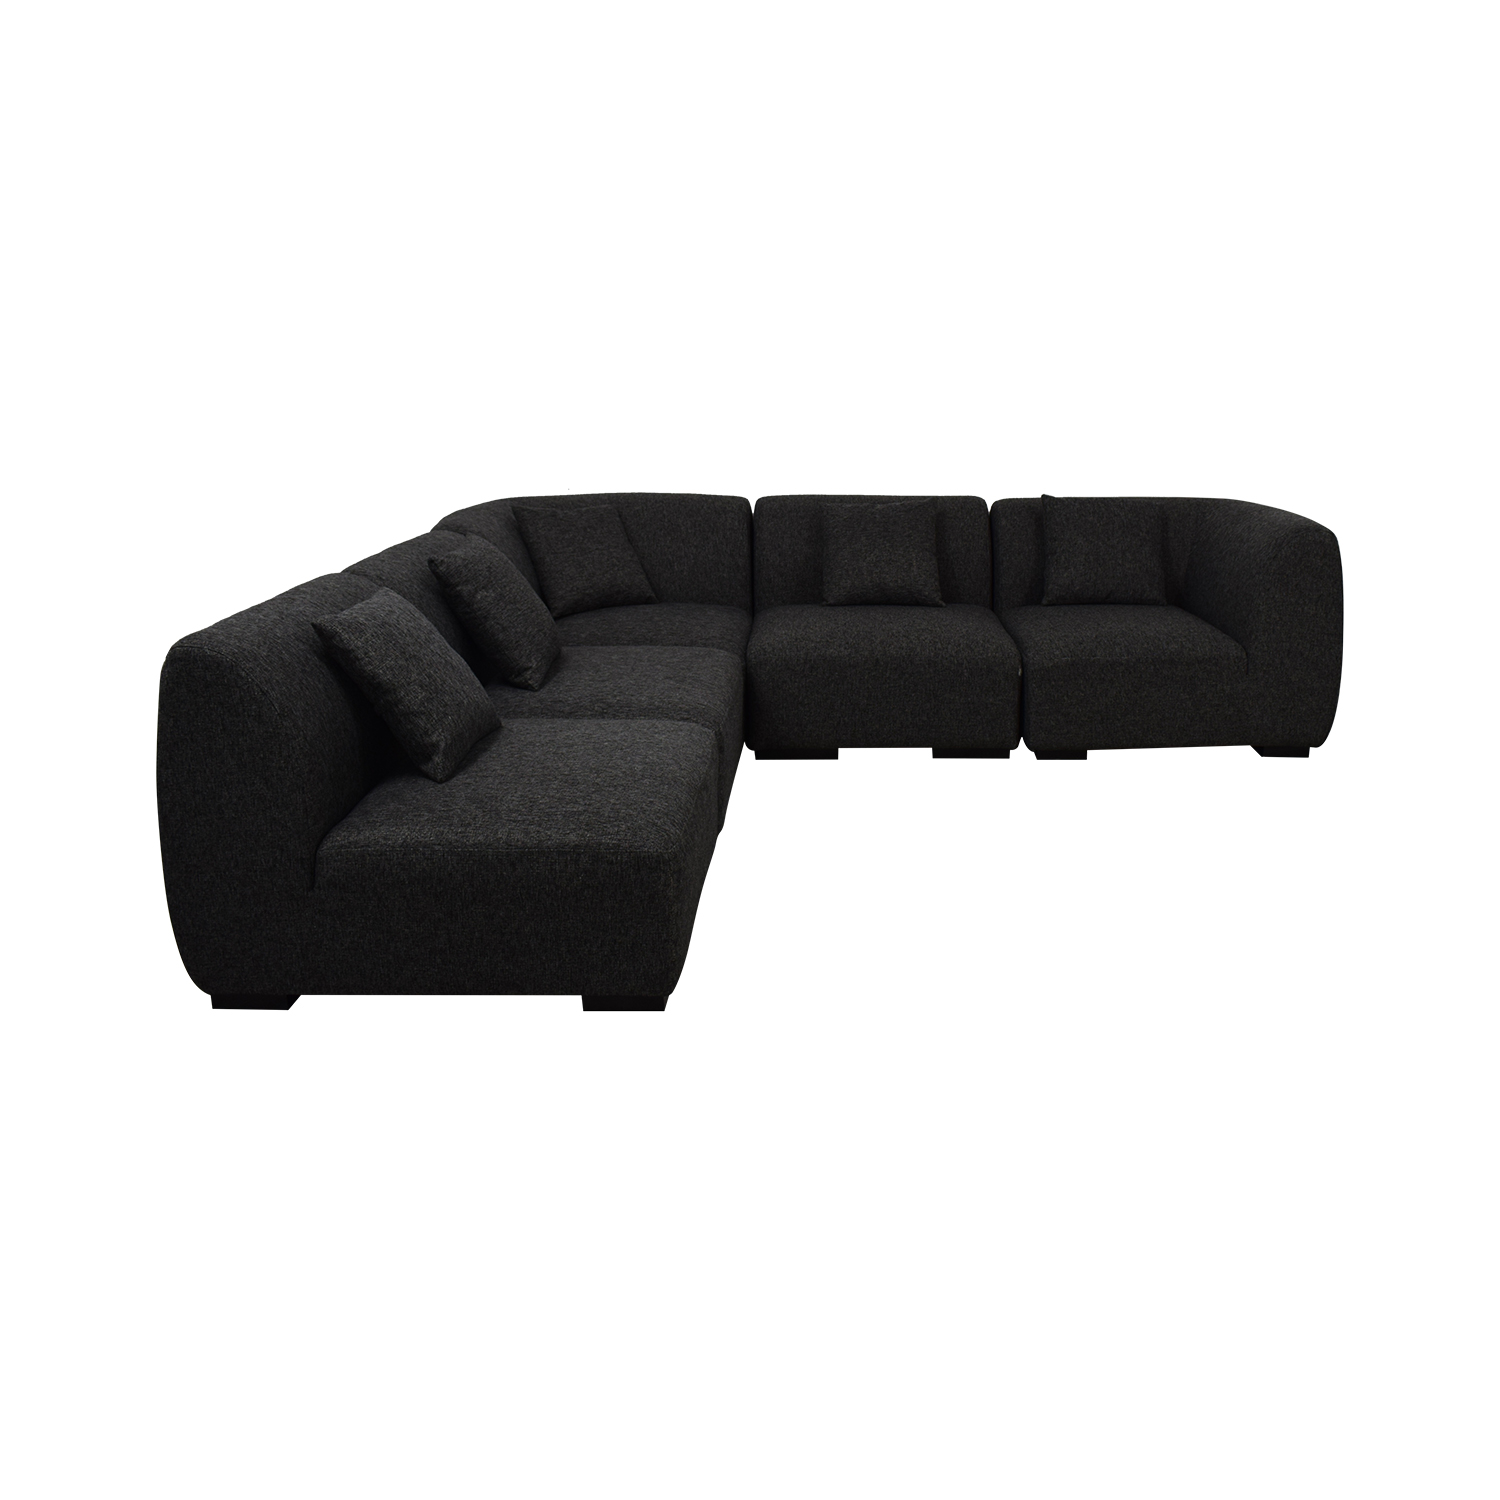 Scandinavian Designs Scandinavian Design Kelsey Modular Sectional for sale